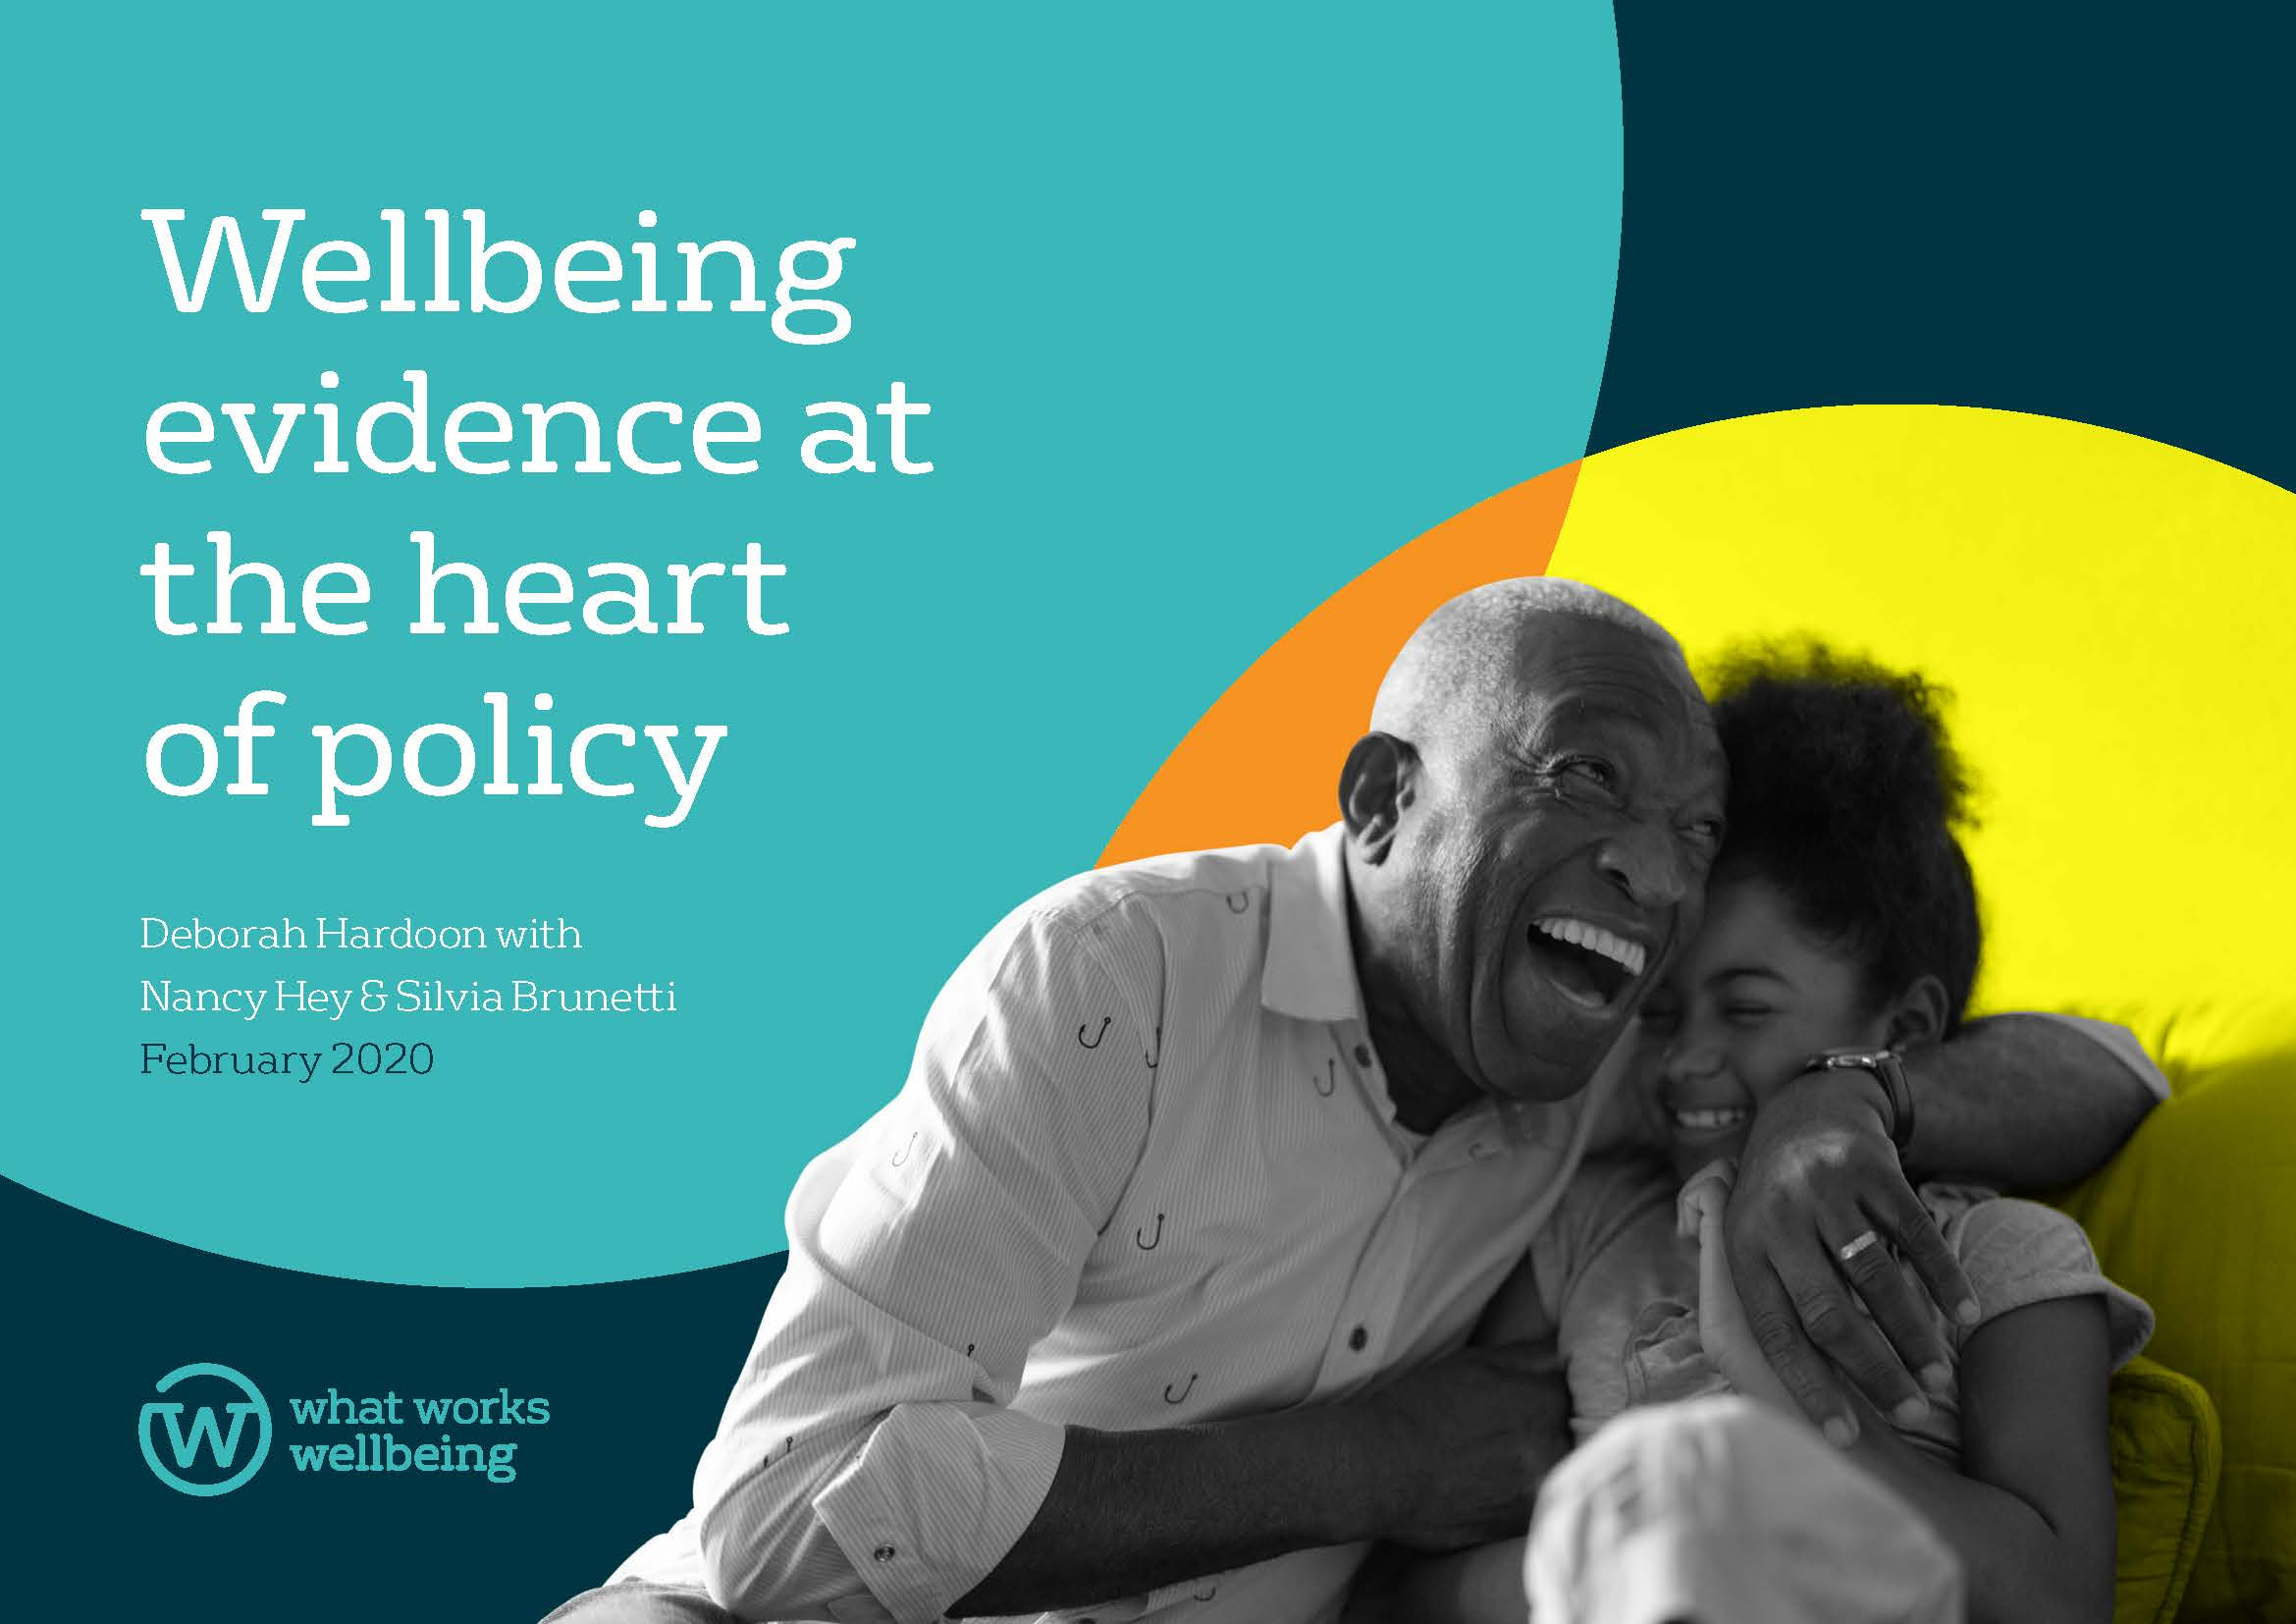 Wellbeing evidence at the heart of policy